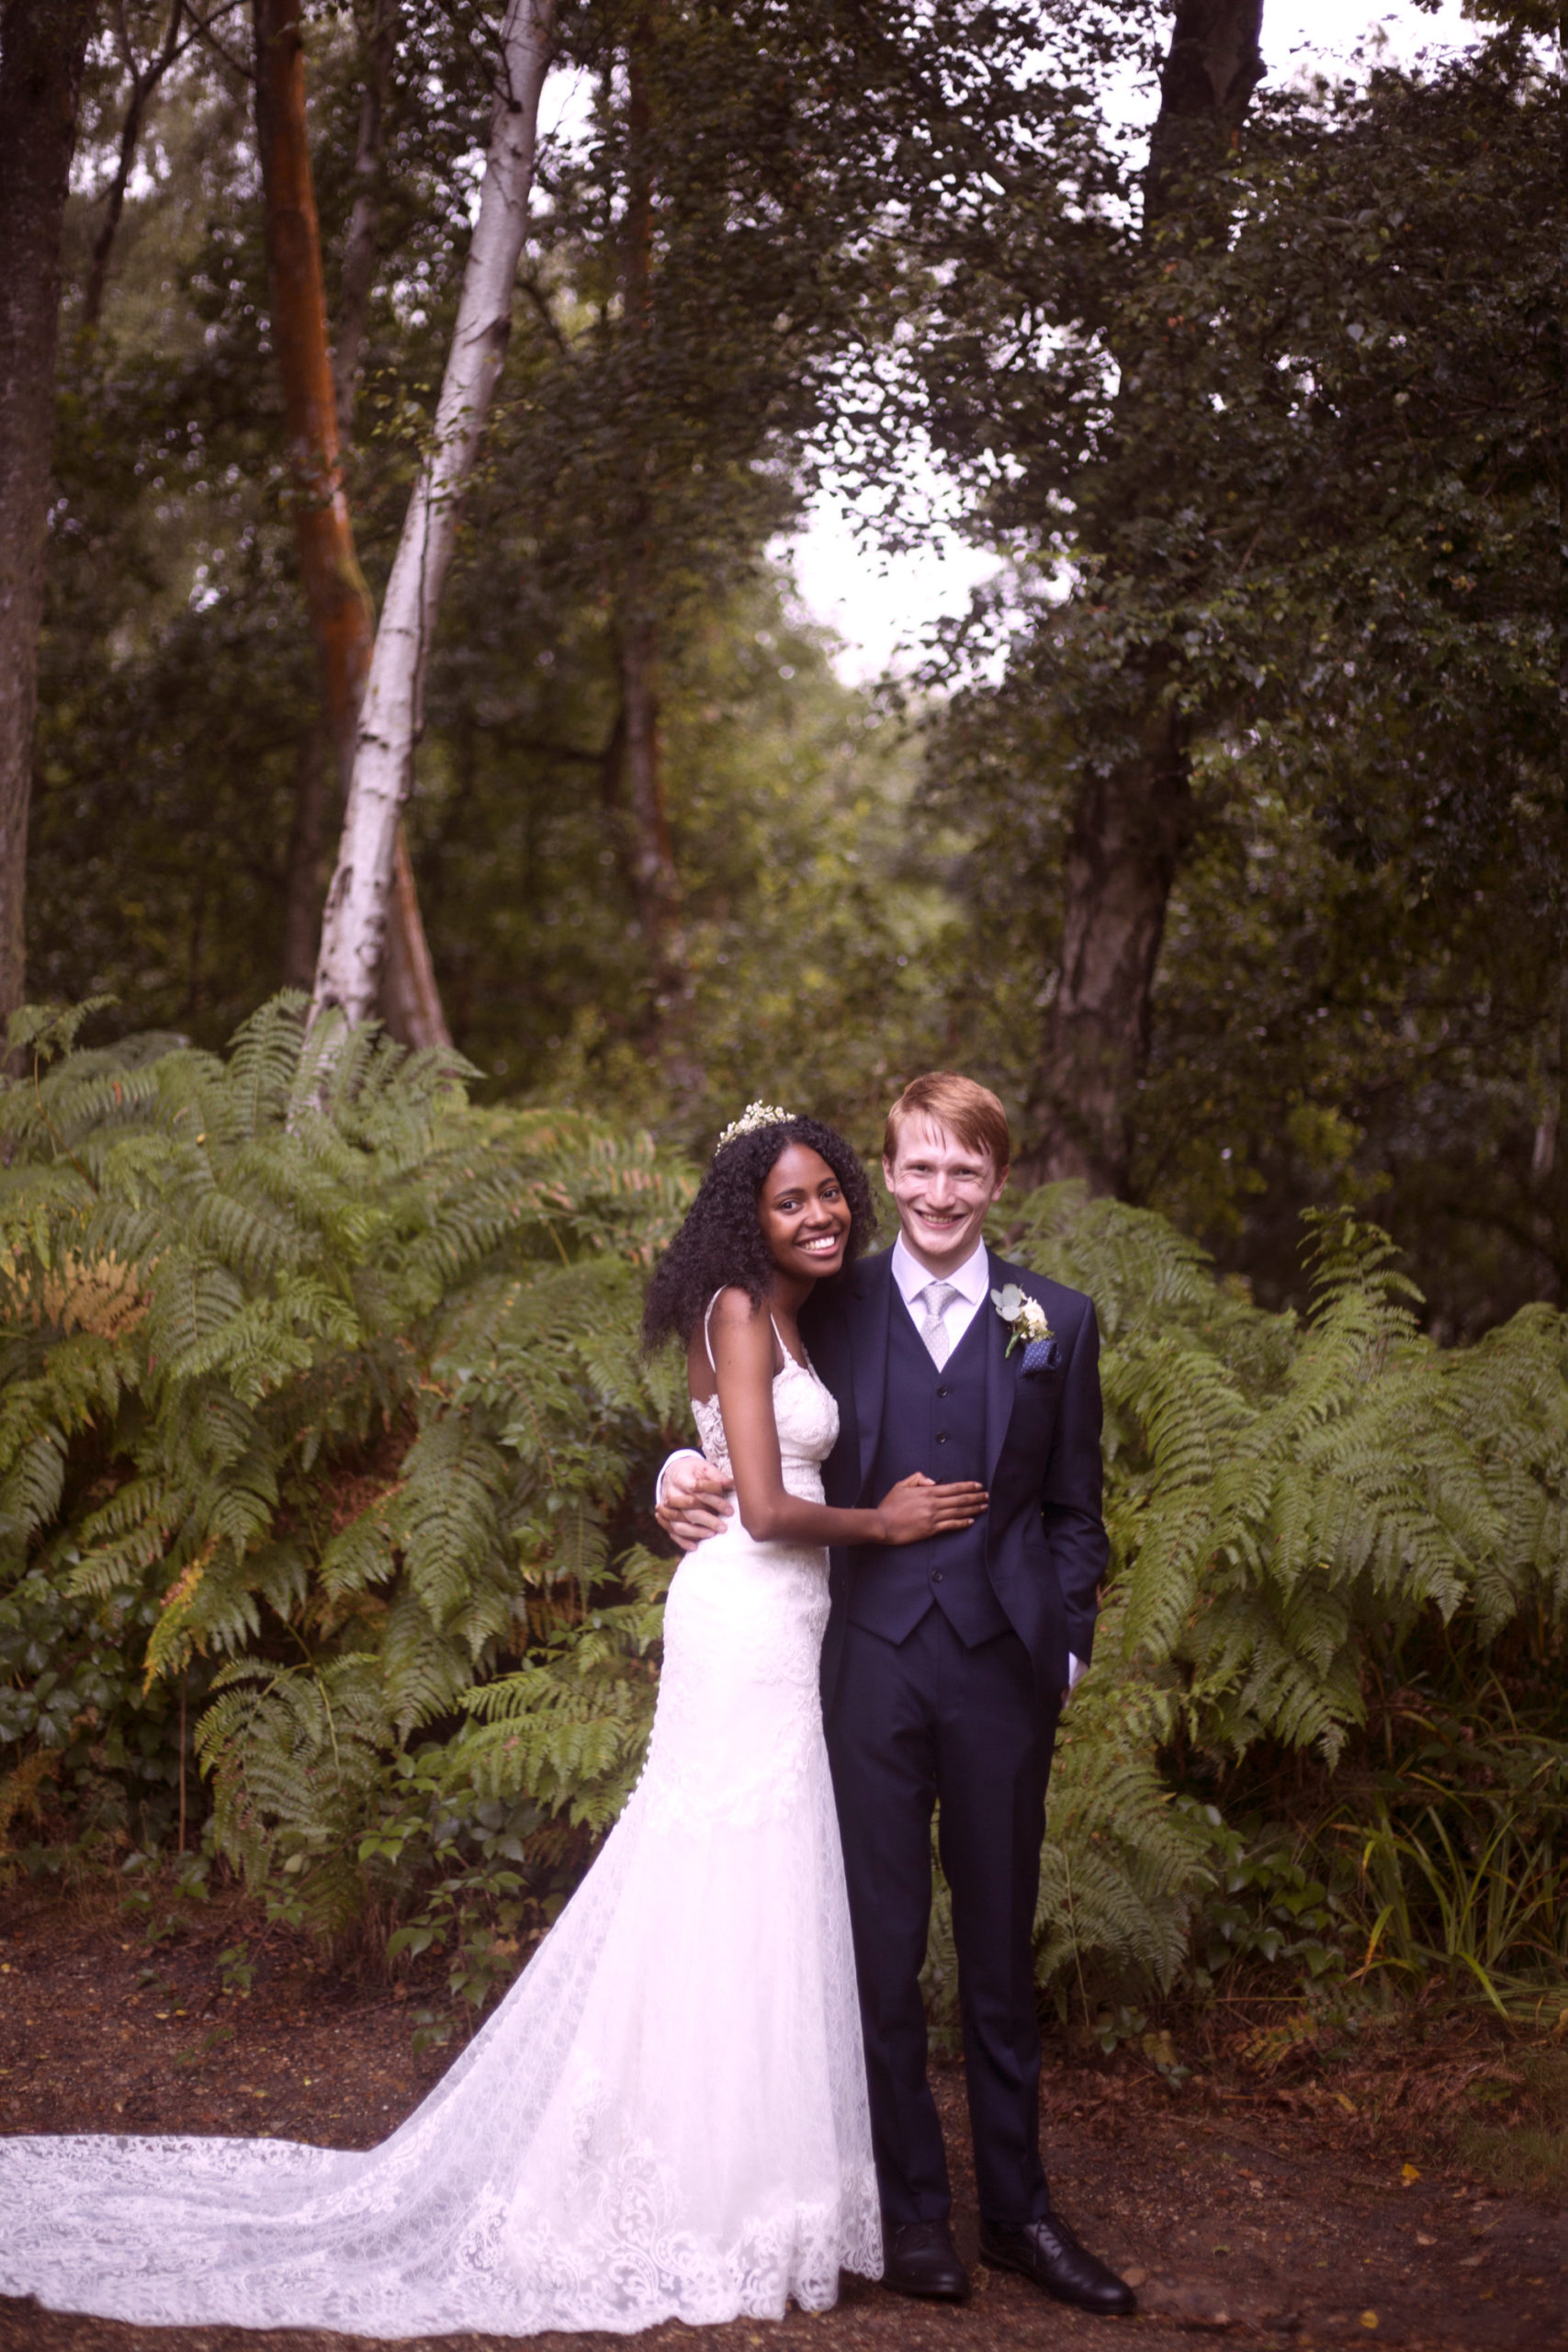 Bride and groom smile with a fern background at Cuffley camp outdoor woodland wedding photographer